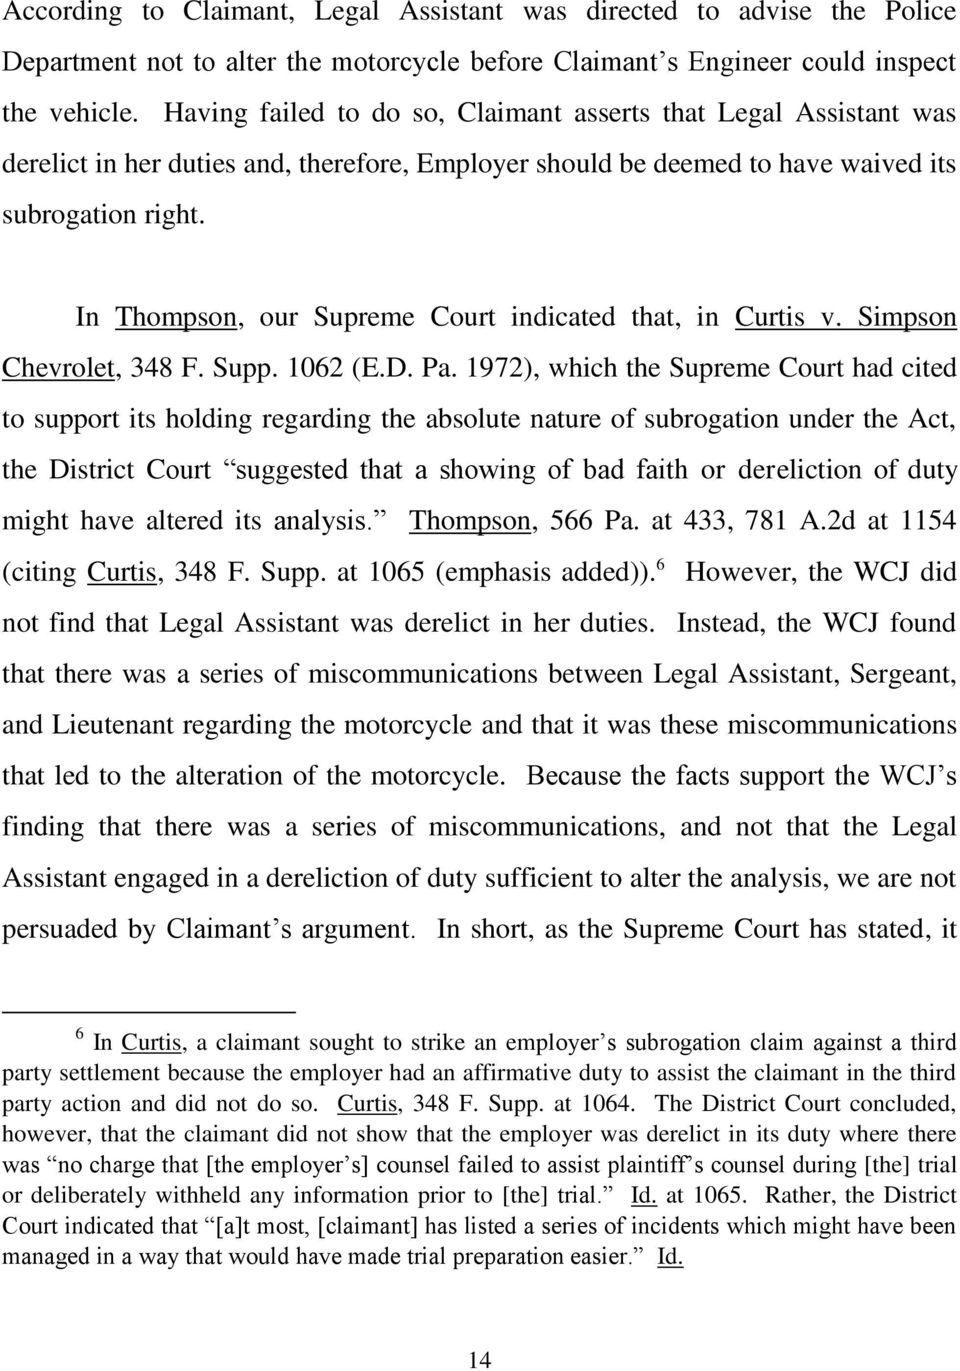 In Thompson, our Supreme Court indicated that, in Curtis v. Simpson Chevrolet, 348 F. Supp. 1062 (E.D. Pa.